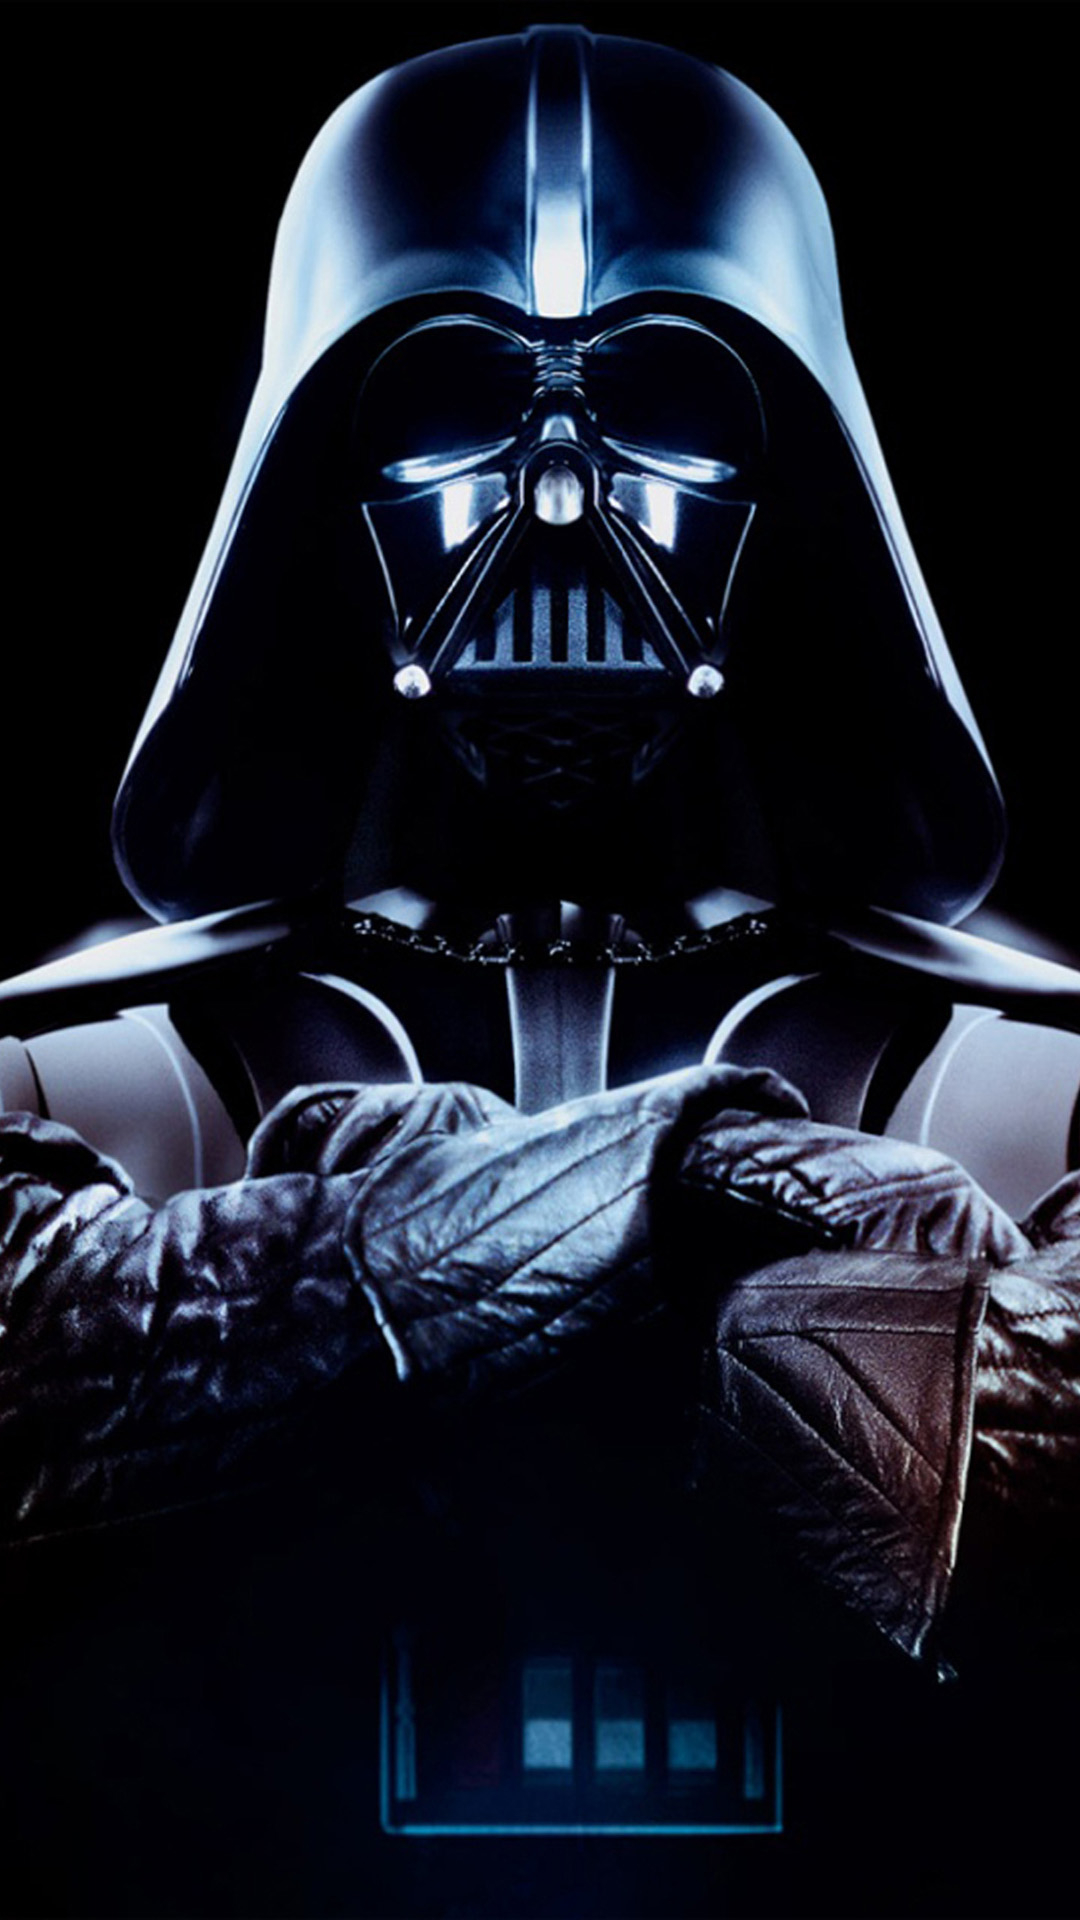 Free Download Darth Vader Star Wars Wallpapers For Galaxy S5 1080x1920 For Your Desktop Mobile Tablet Explore 50 Star Wars Galaxies Wallpaper Star Wars Galaxies Wallpaper Star Wars Galaxies